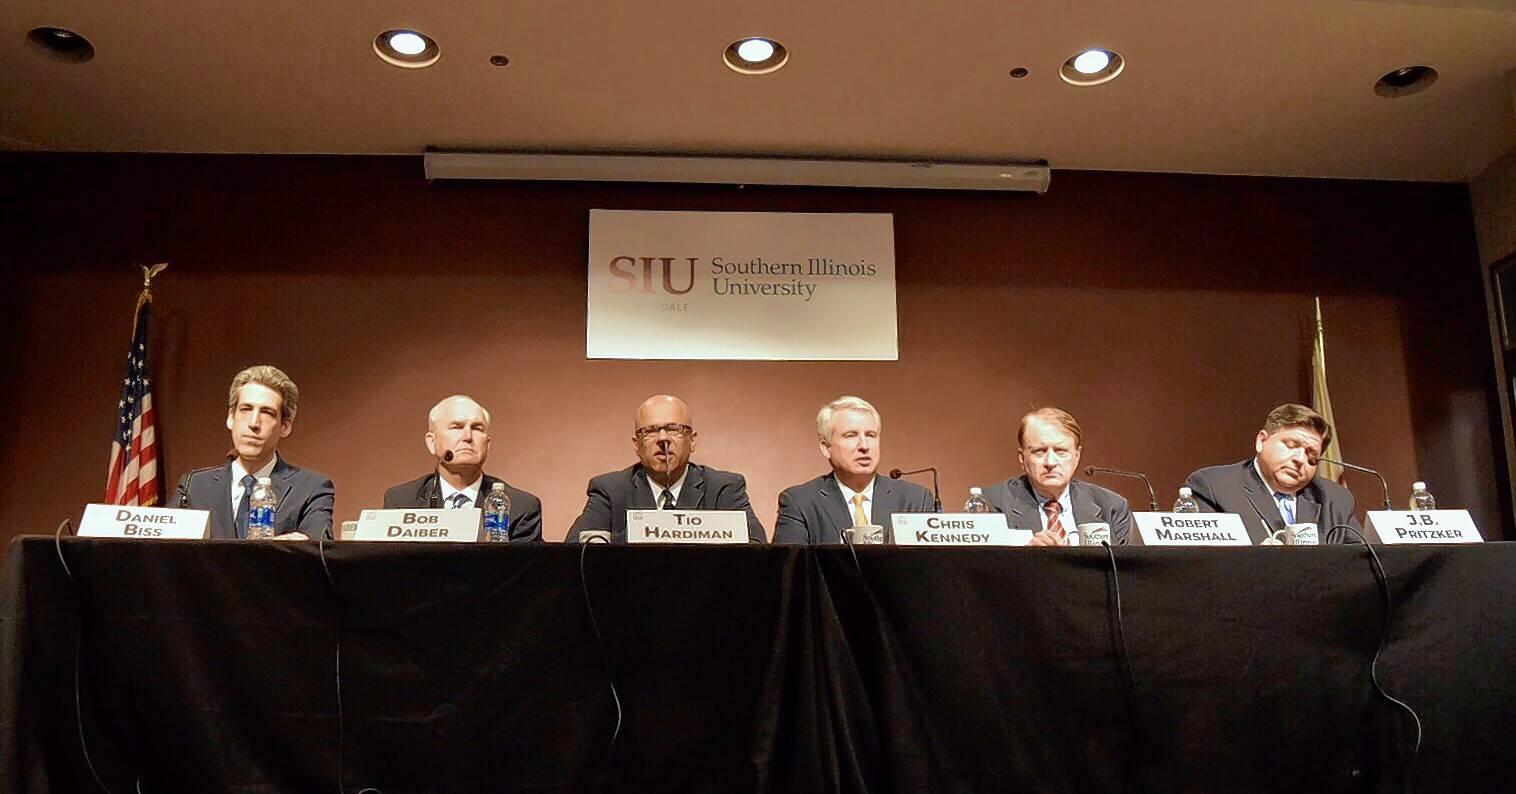 Democratic candidates for Illinois governor face the audience at a forum at Southern Illinois University conducted in January by Paddock Publications.